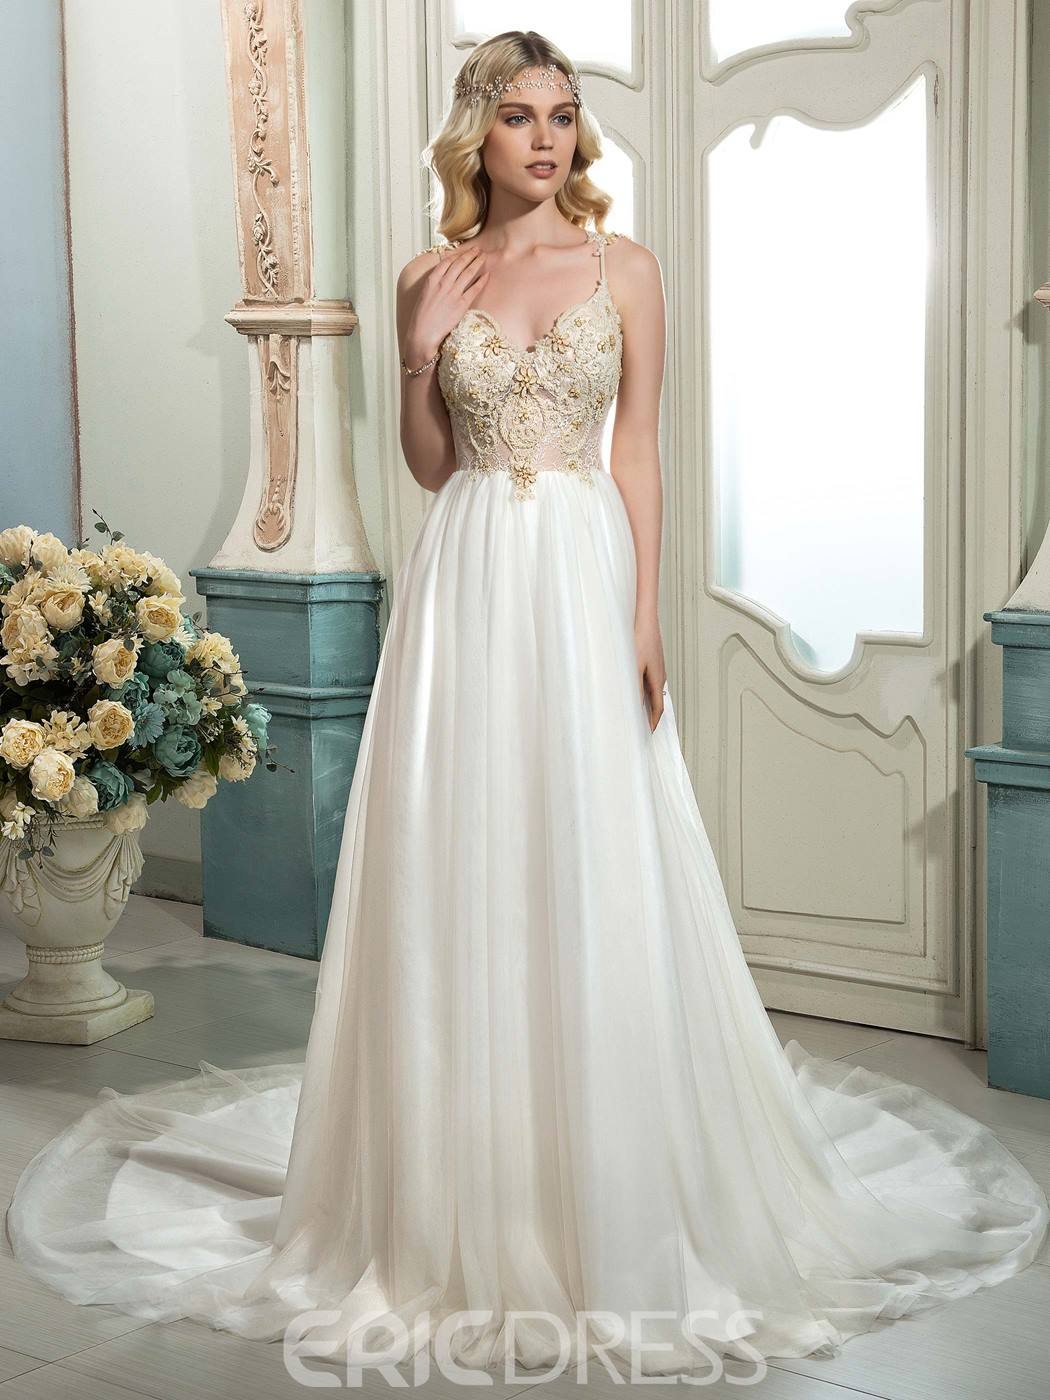 Ericdress Beautiful Spaghetti Straps Beaded A Line Wedding Dress ...